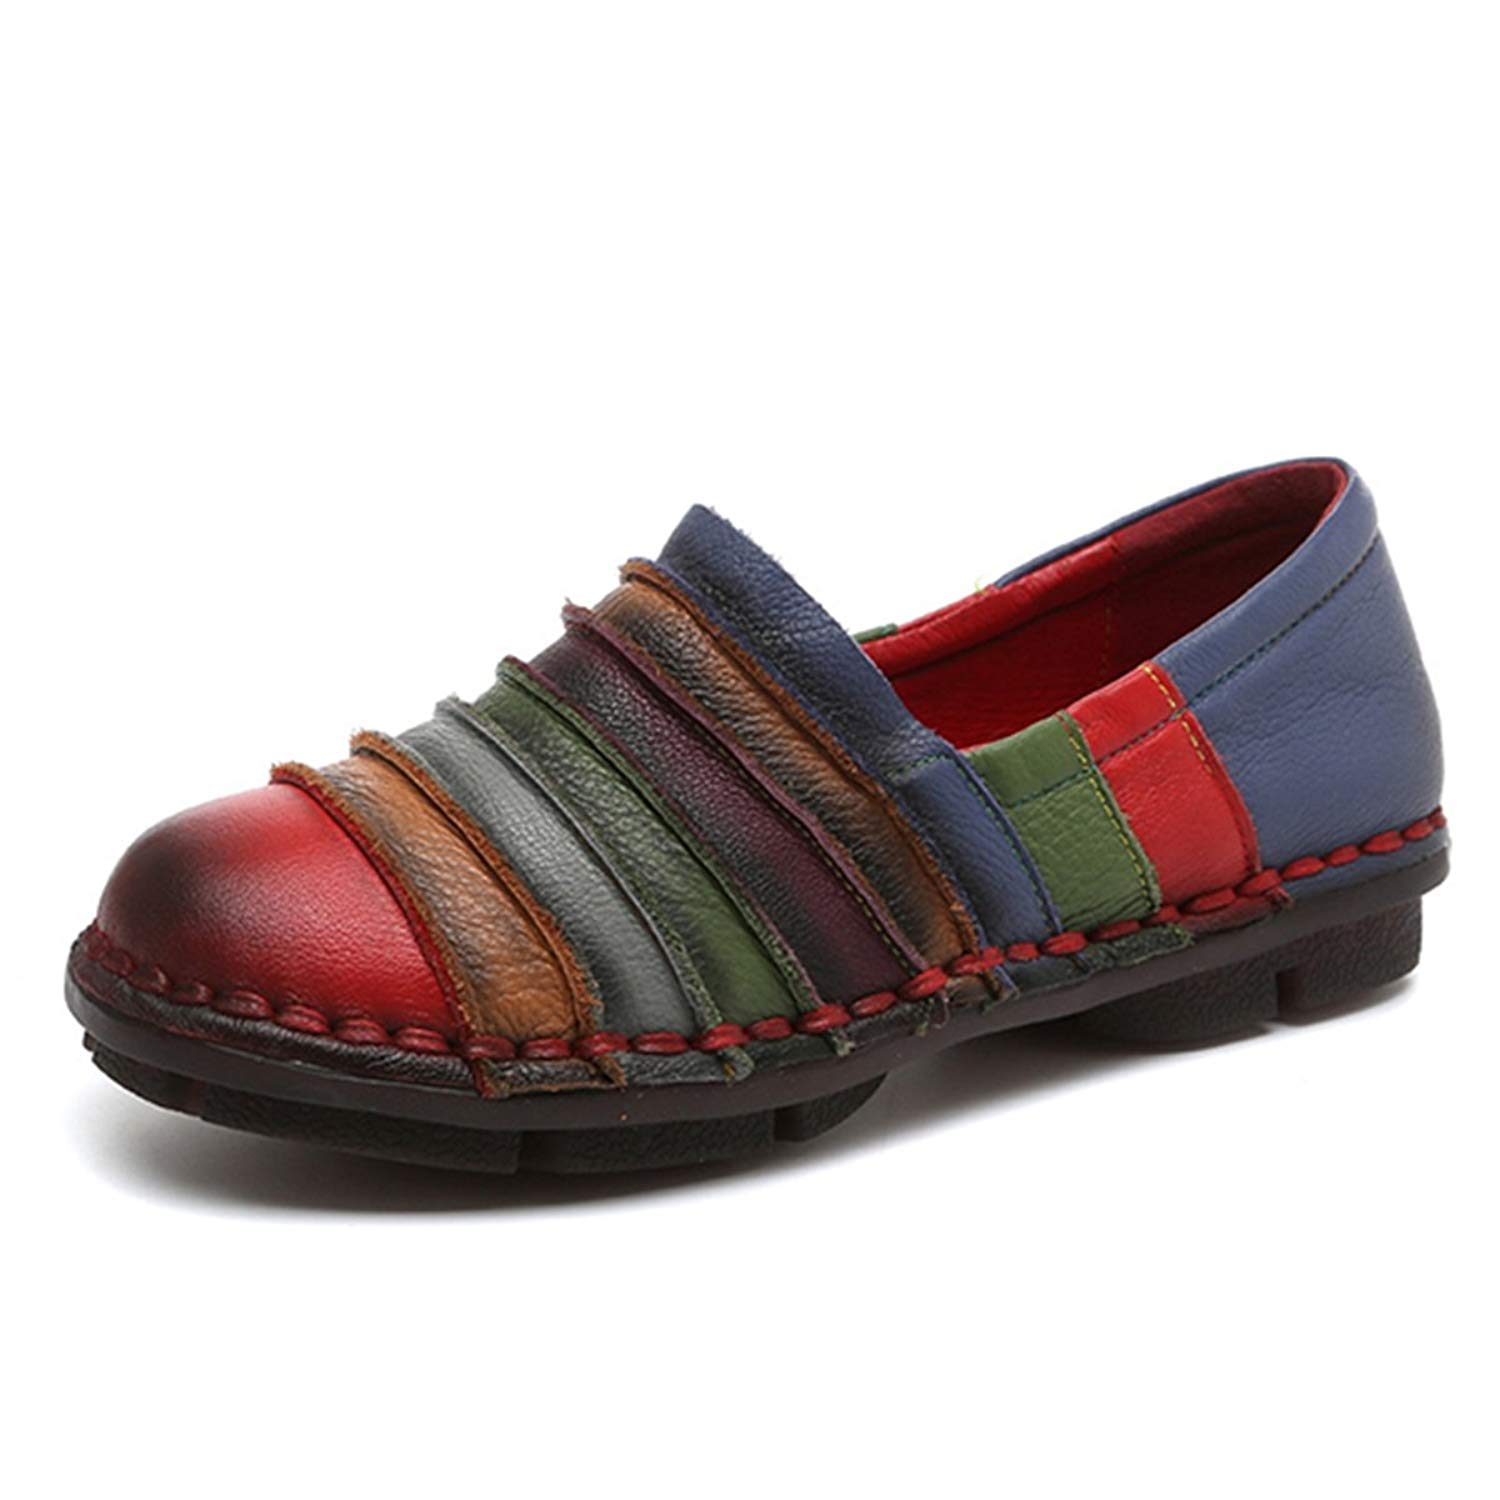 992a2cd44b9 Get Quotations · Socofy Slip-on Loafer